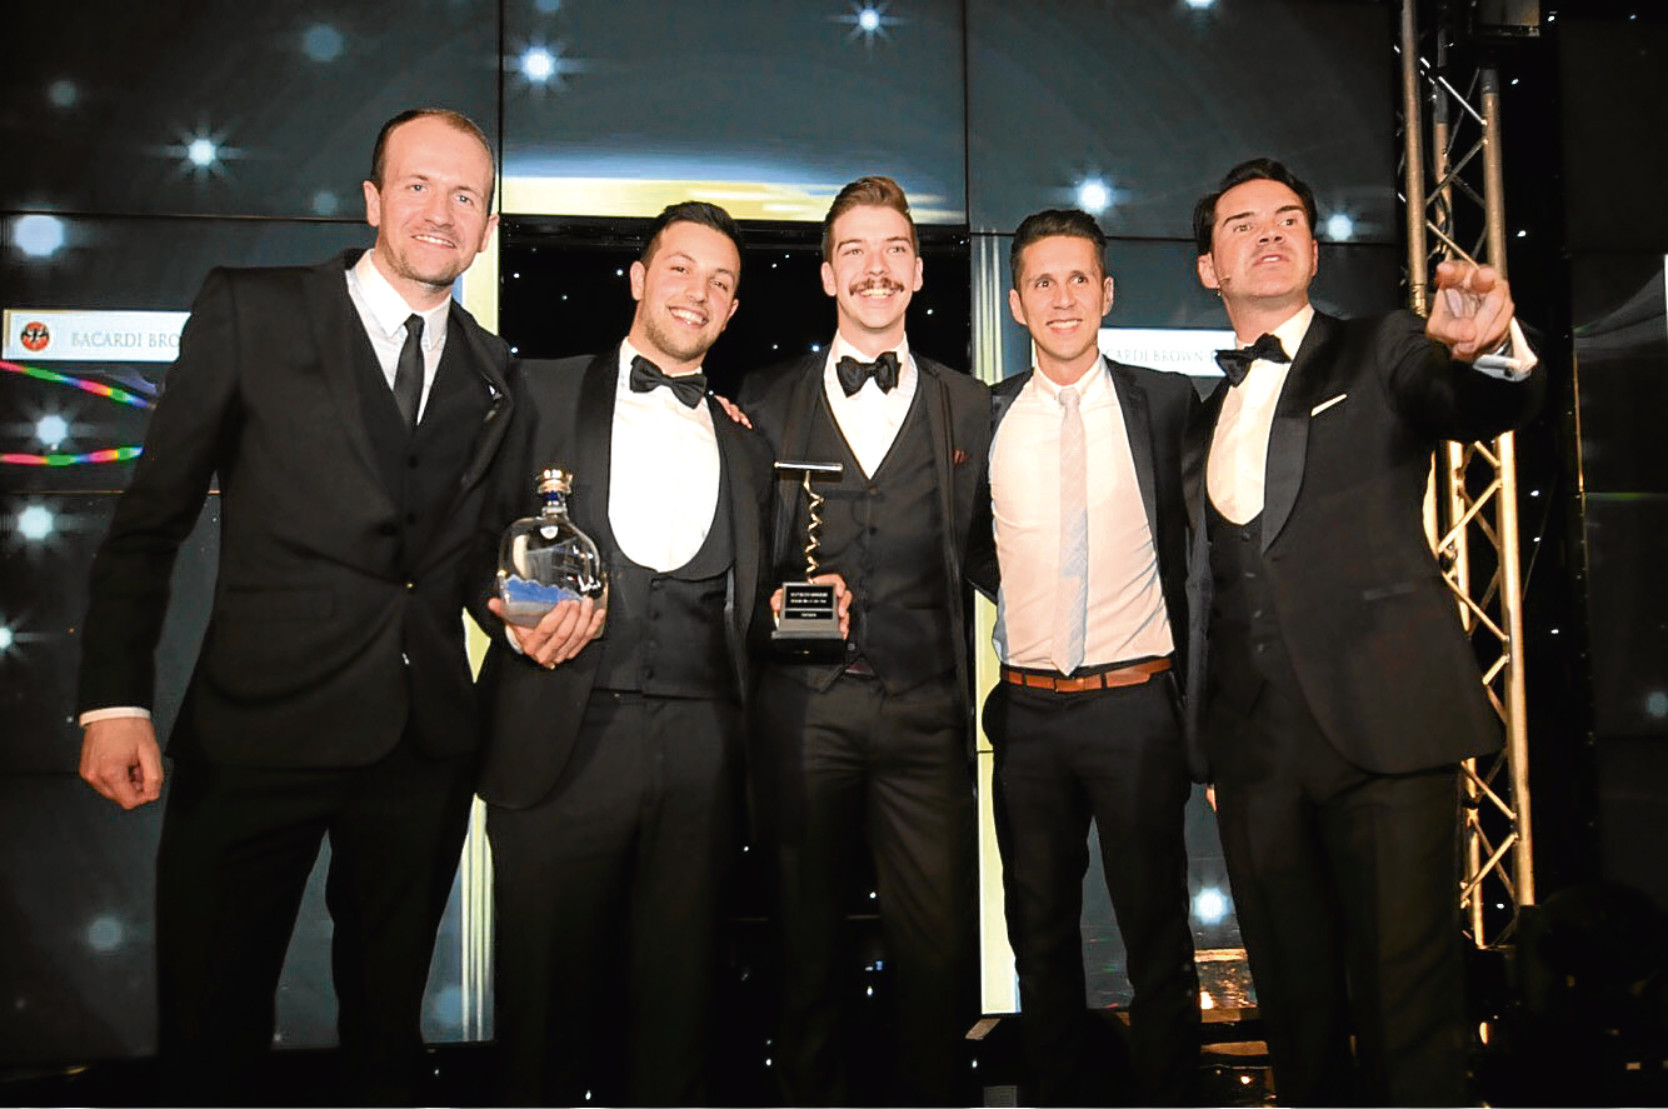 The Orchid Bar team including general manager Nick Gordon, centre, with Jimmy Carr, far right, at the SLTN awards.